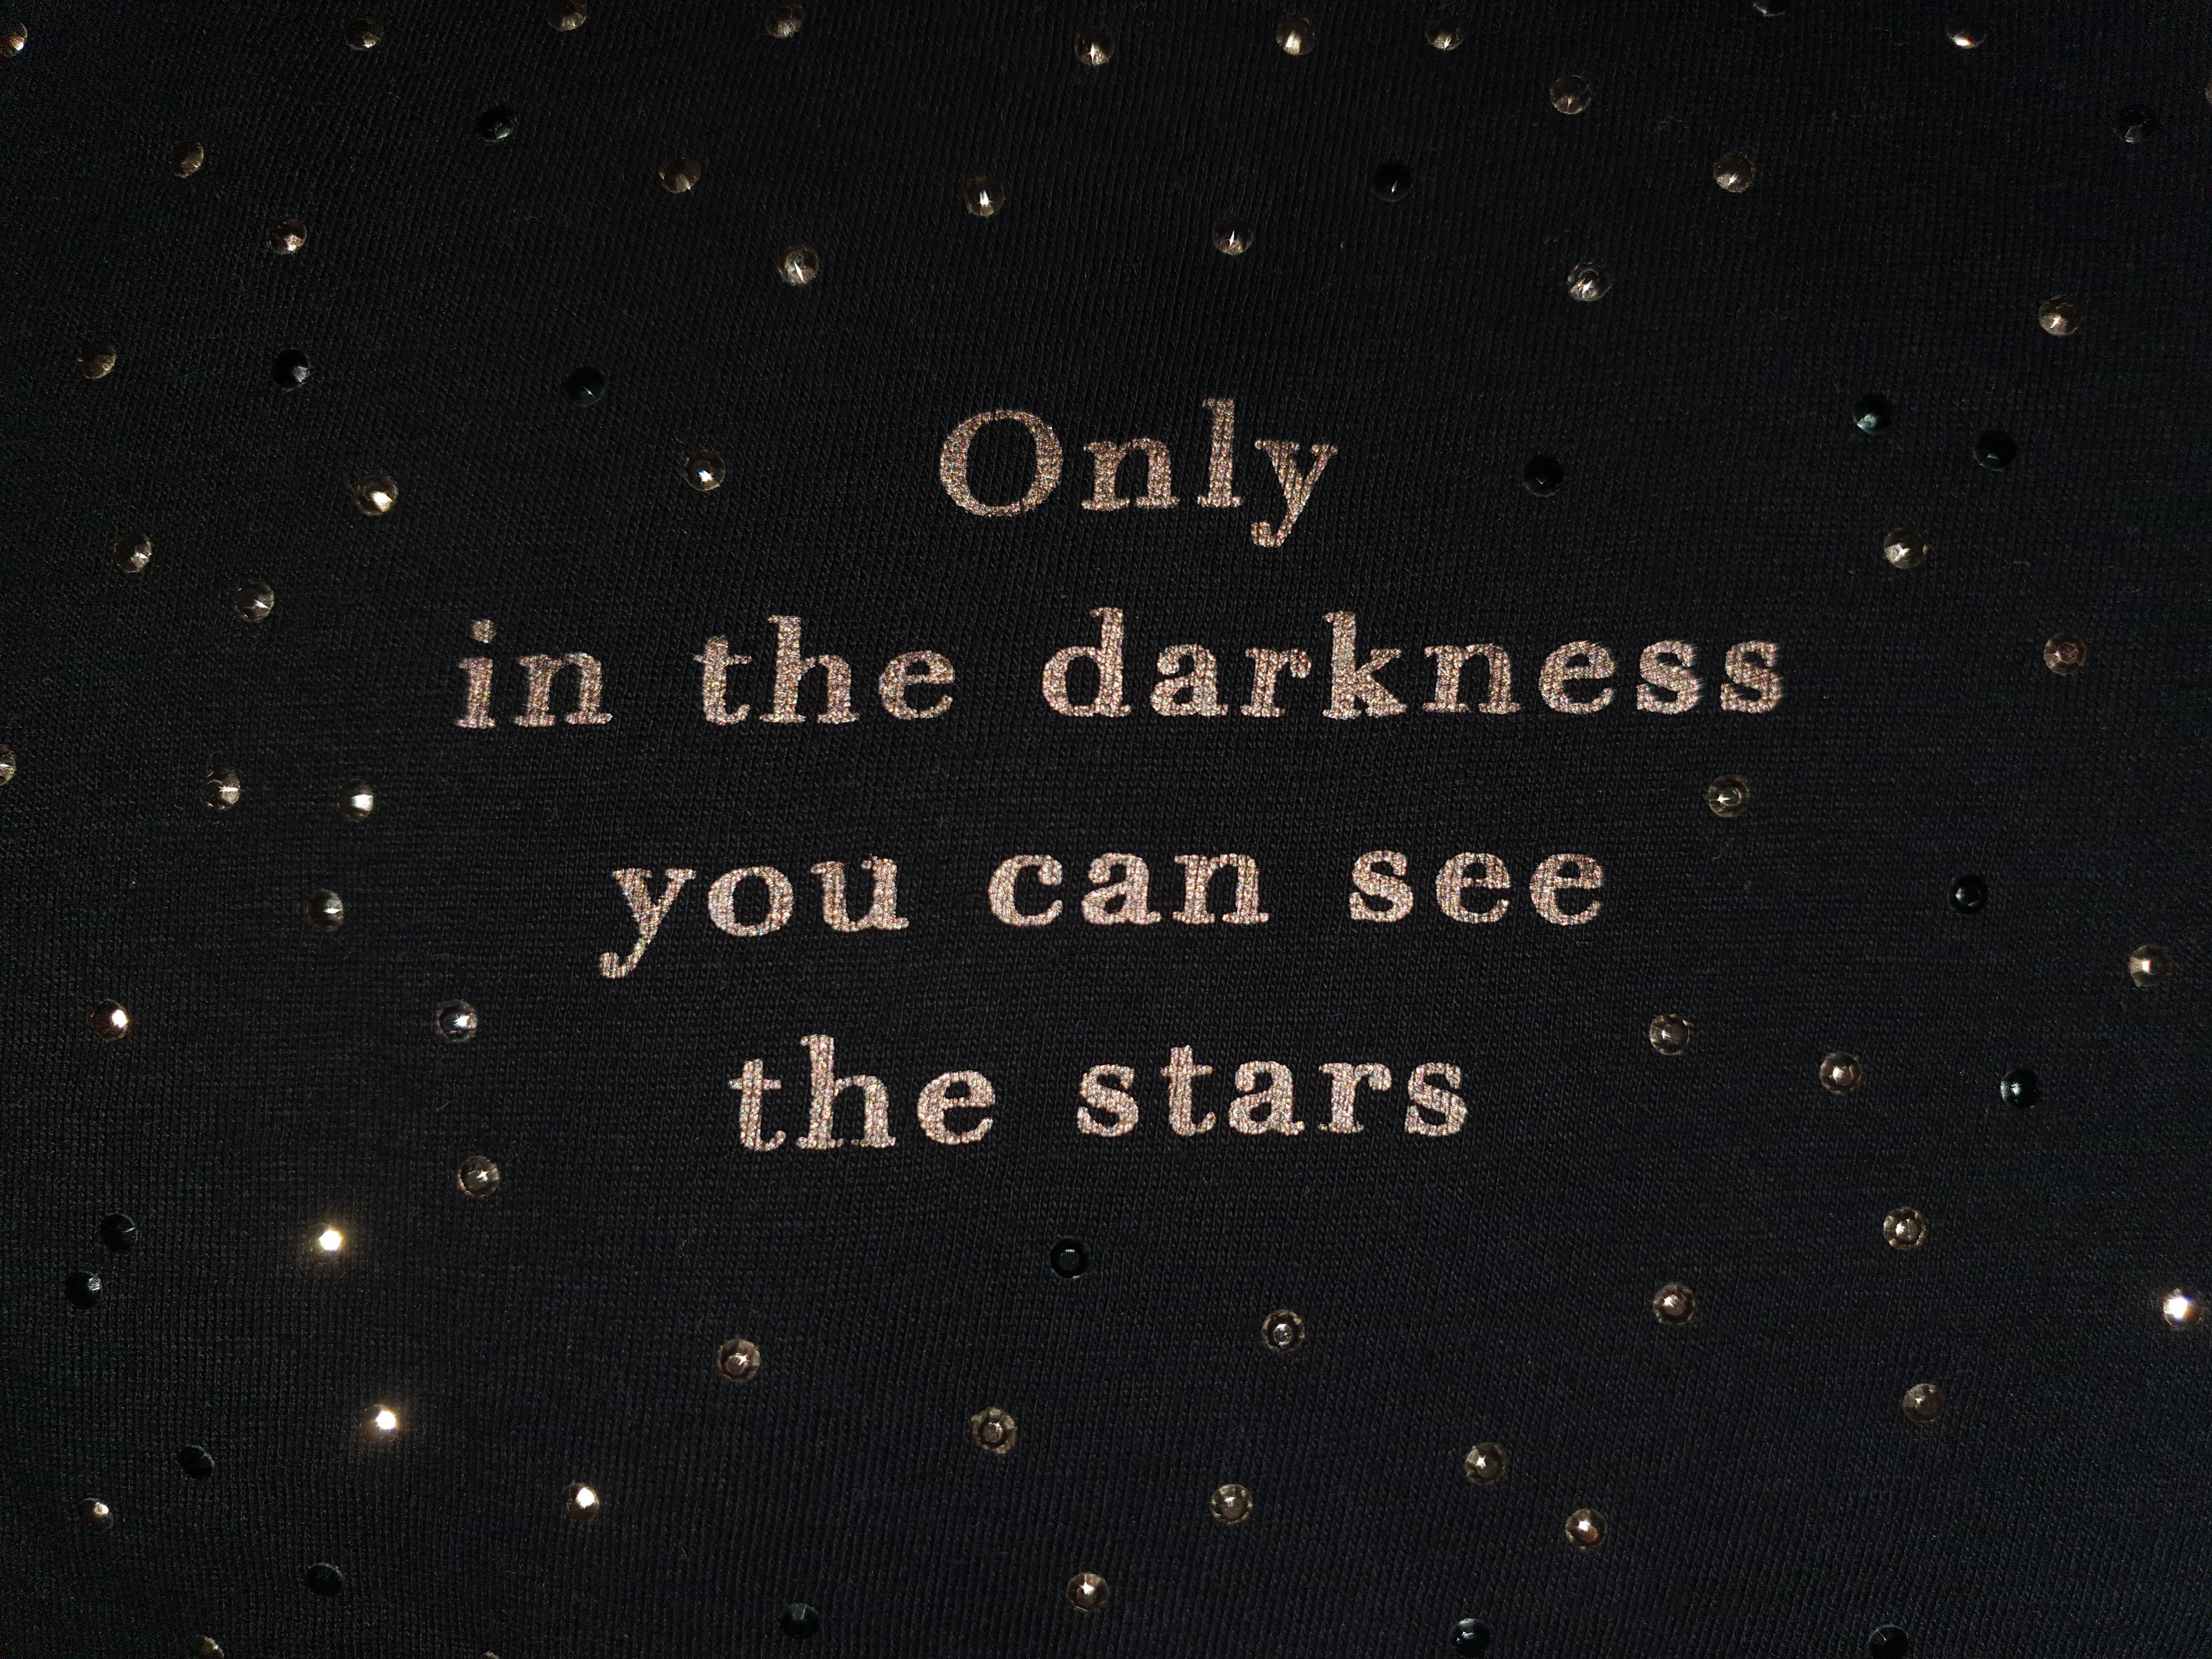 [Image] You just have to look for the stars